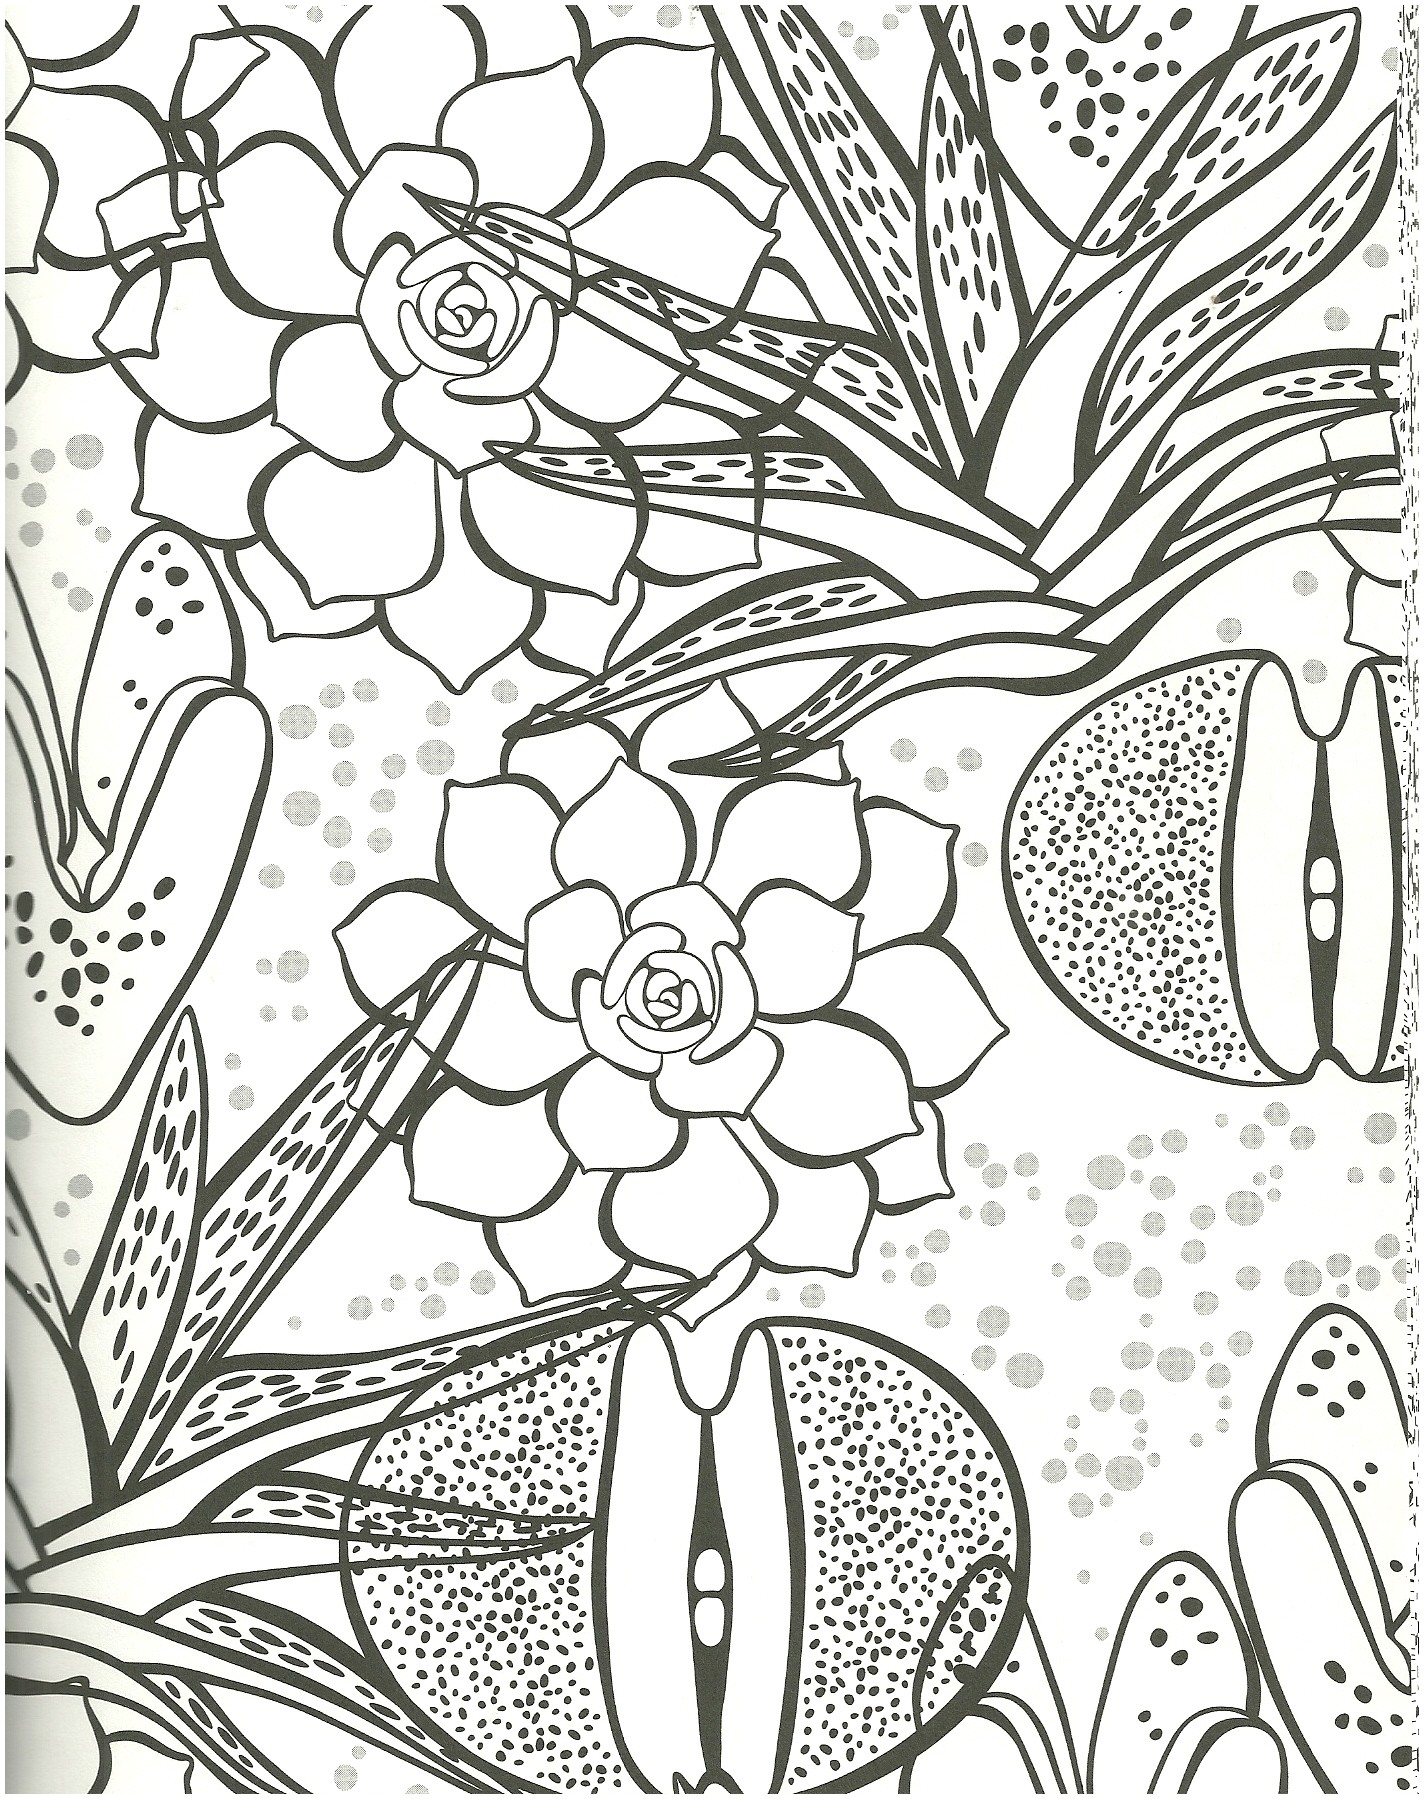 fall flowers coloring pages Download-Valentine Coloring Pages Cool Vases Flower Vase Coloring Page Pages Flowers In A top I 0d 12-o